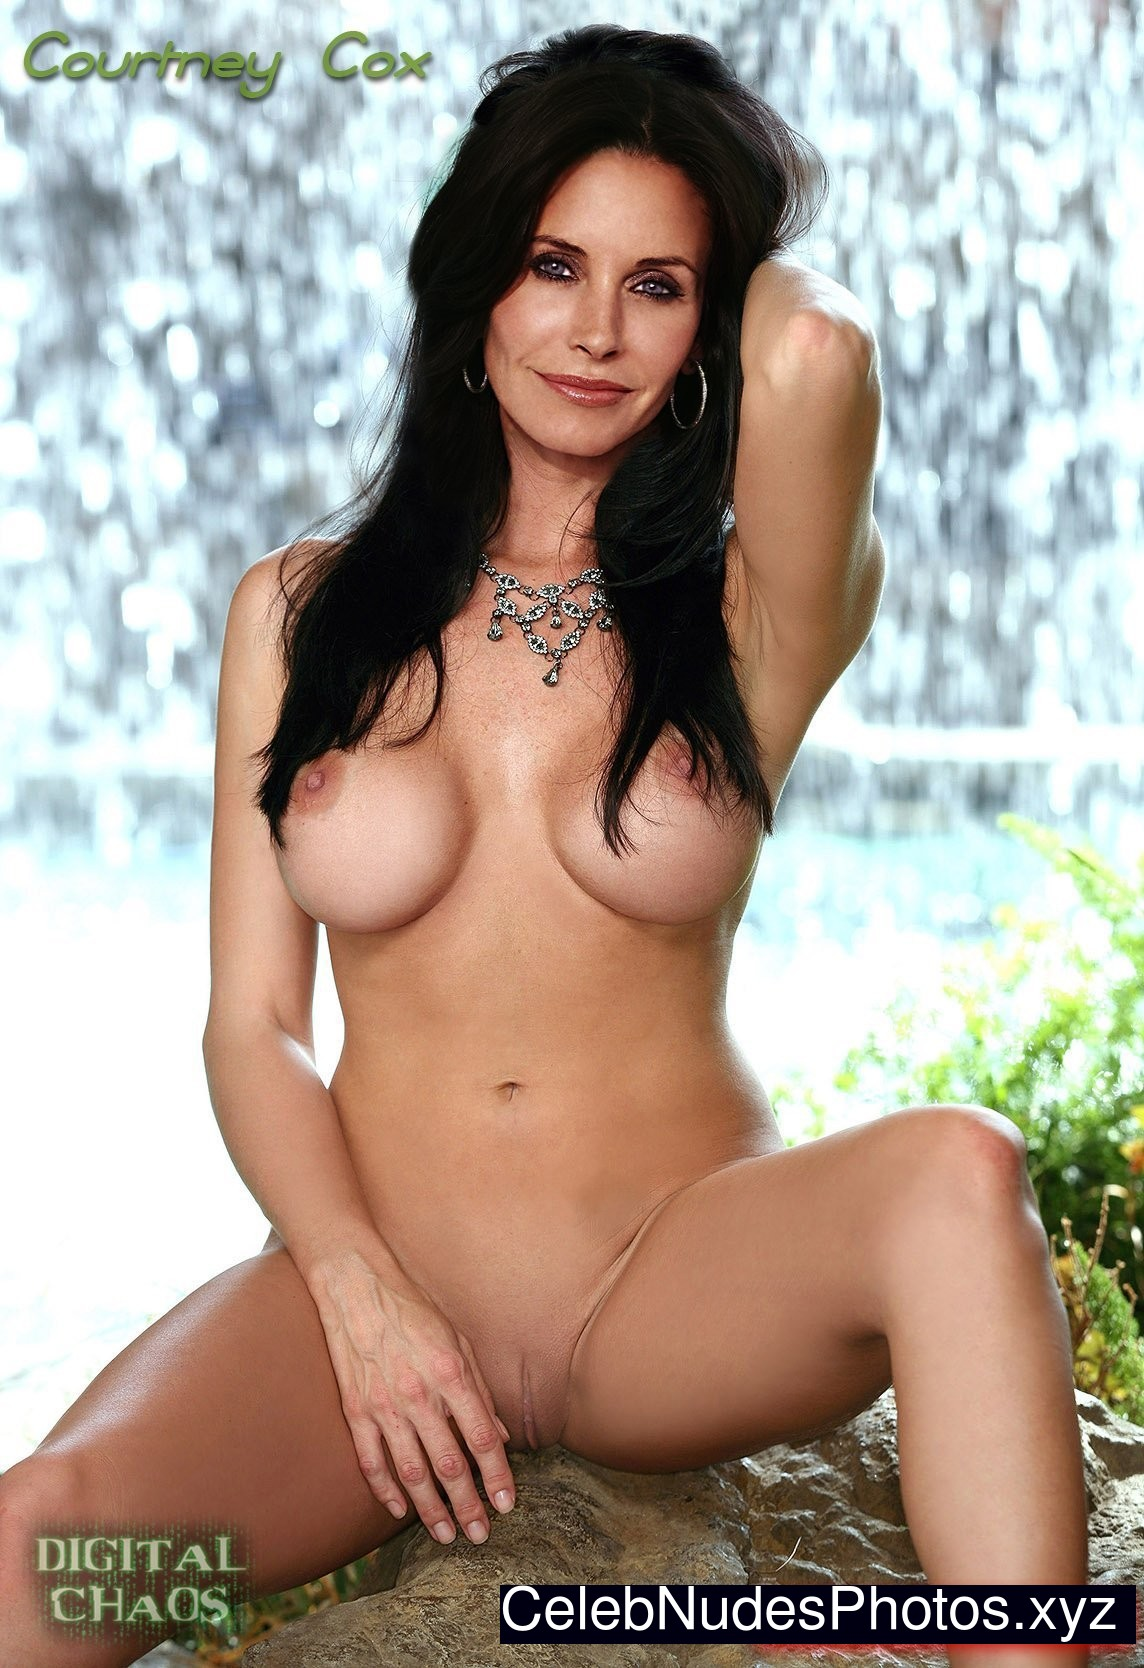 Sex With Courtney Cox Excellent Porn